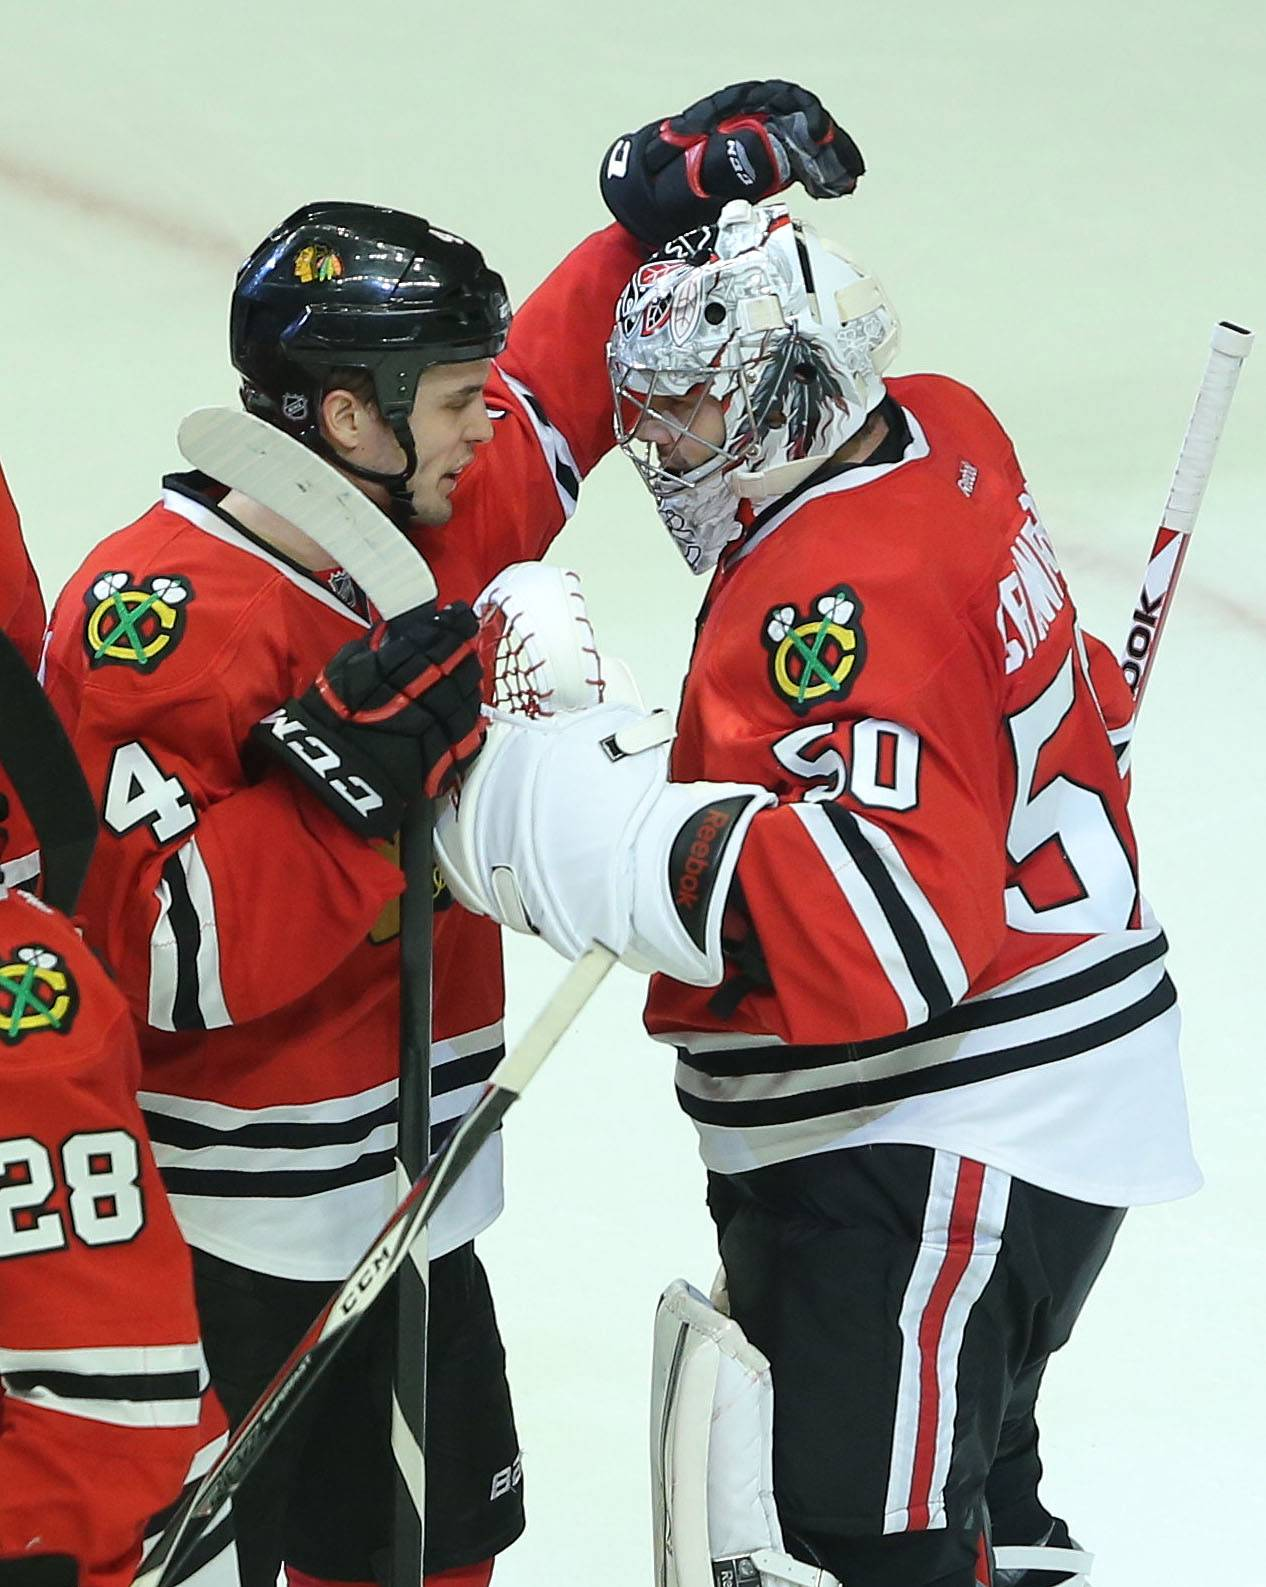 Chicago Blackhawks defenseman Niklas Hjalmarsson congratulates Chicago Blackhawks goalie Corey Crawford after the 2-0 win.